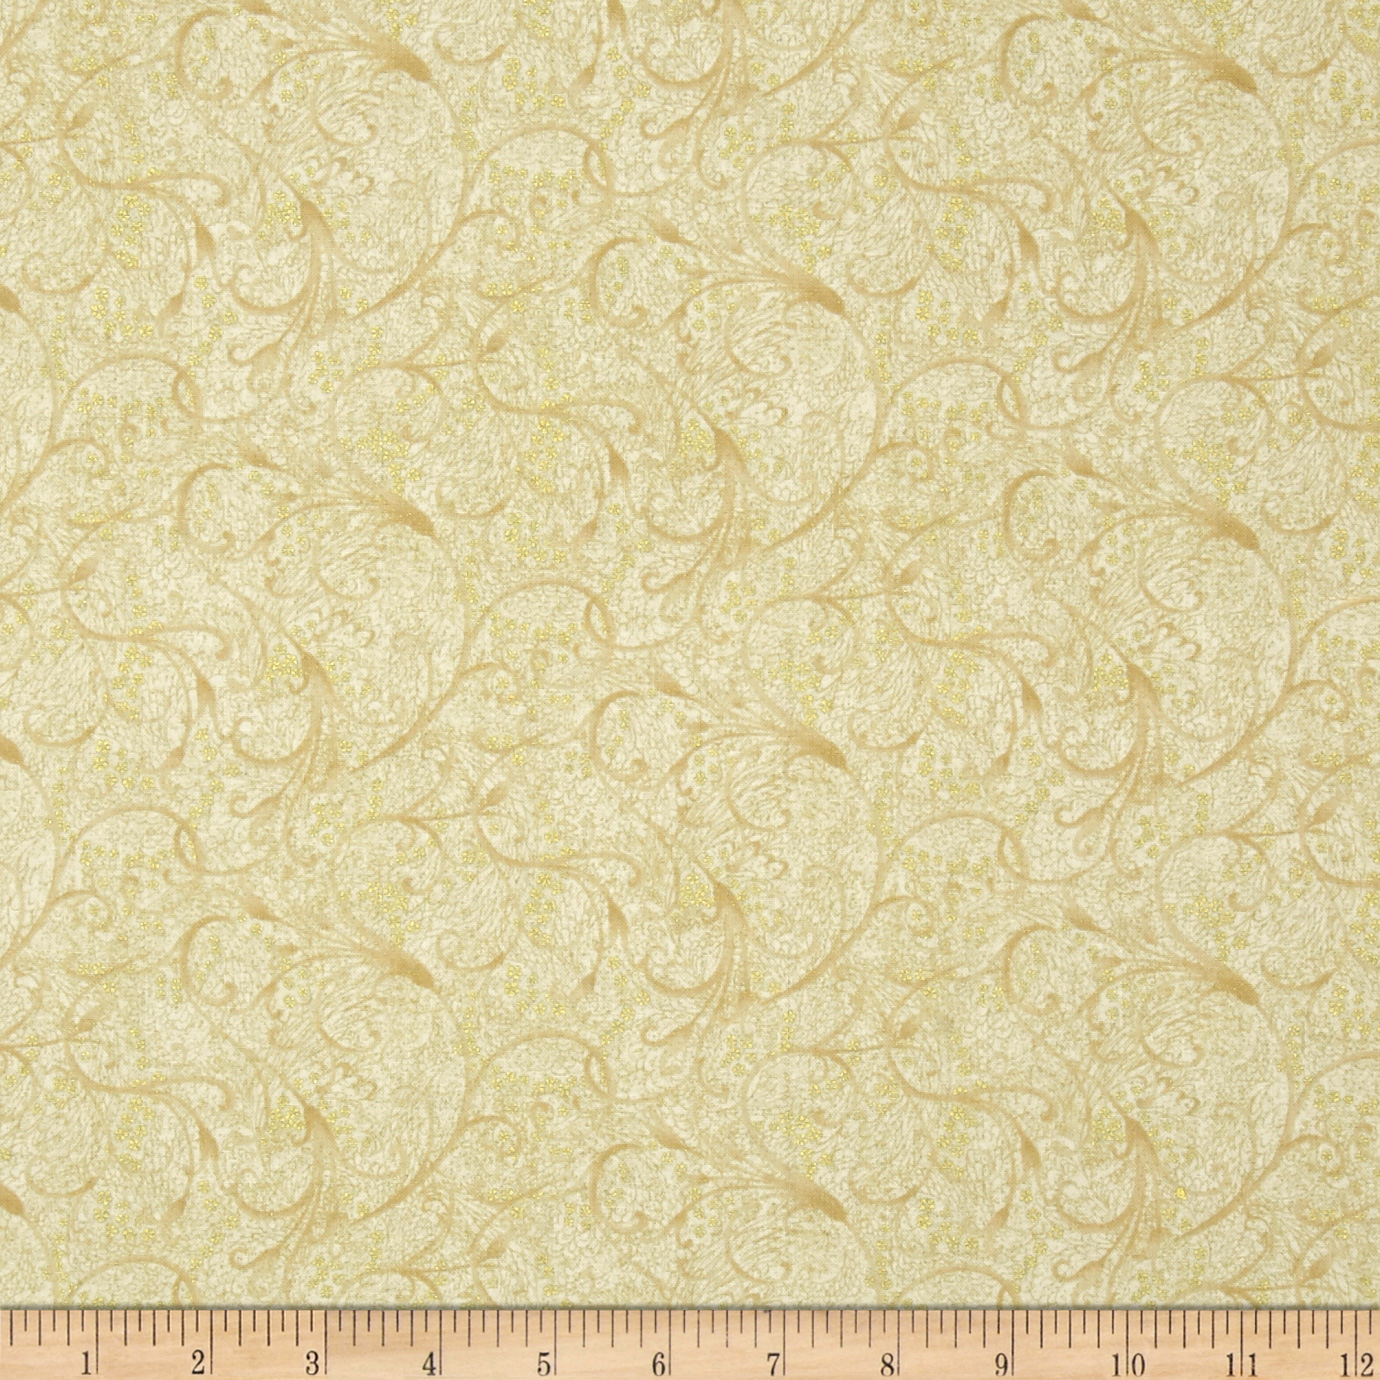 Tea House Tea Garden Scroll Antique Fabric